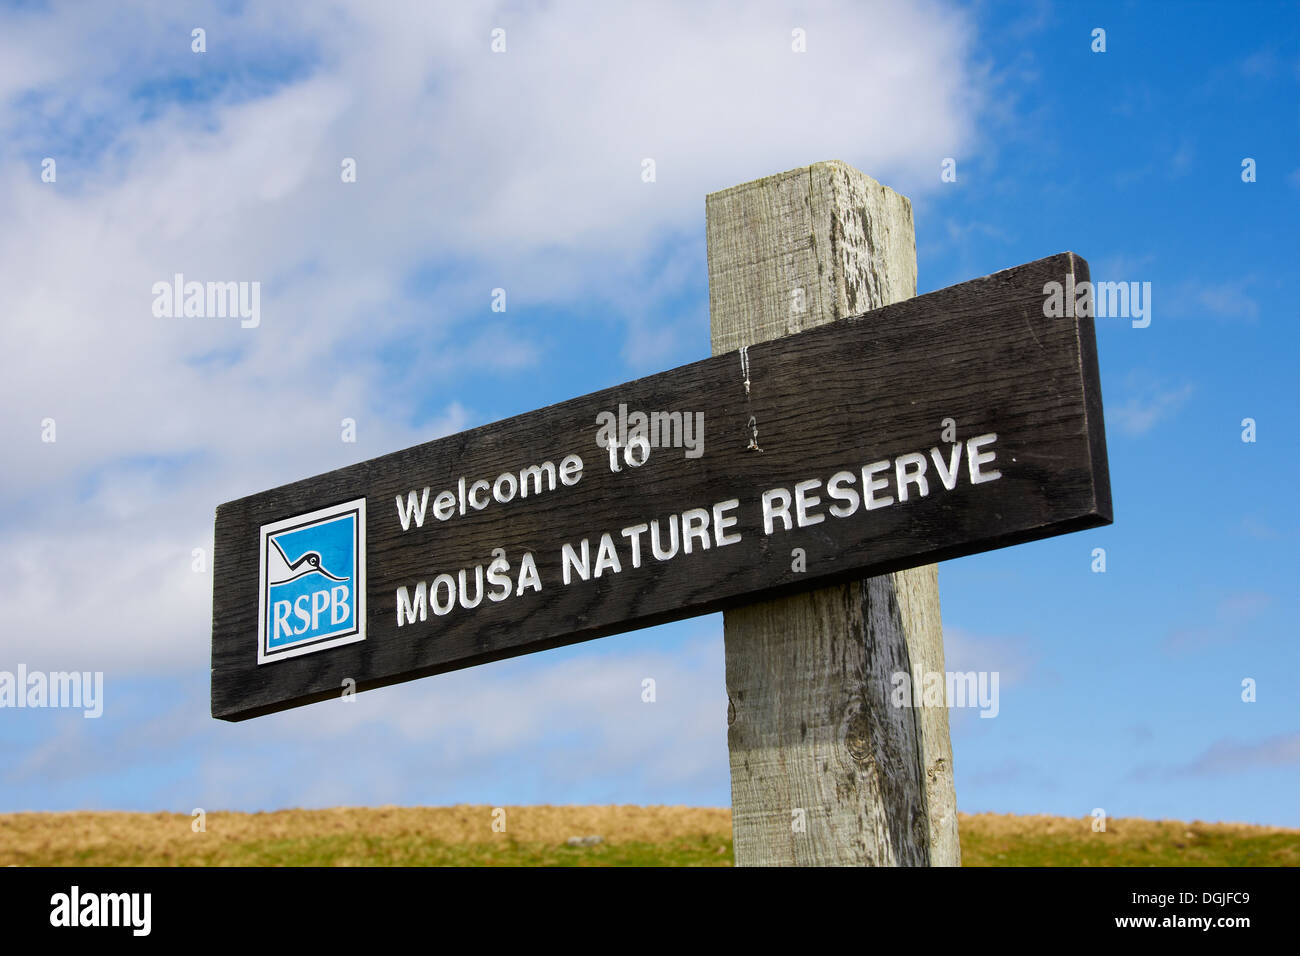 RSPB noticeboard on the island of Mousa. - Stock Image